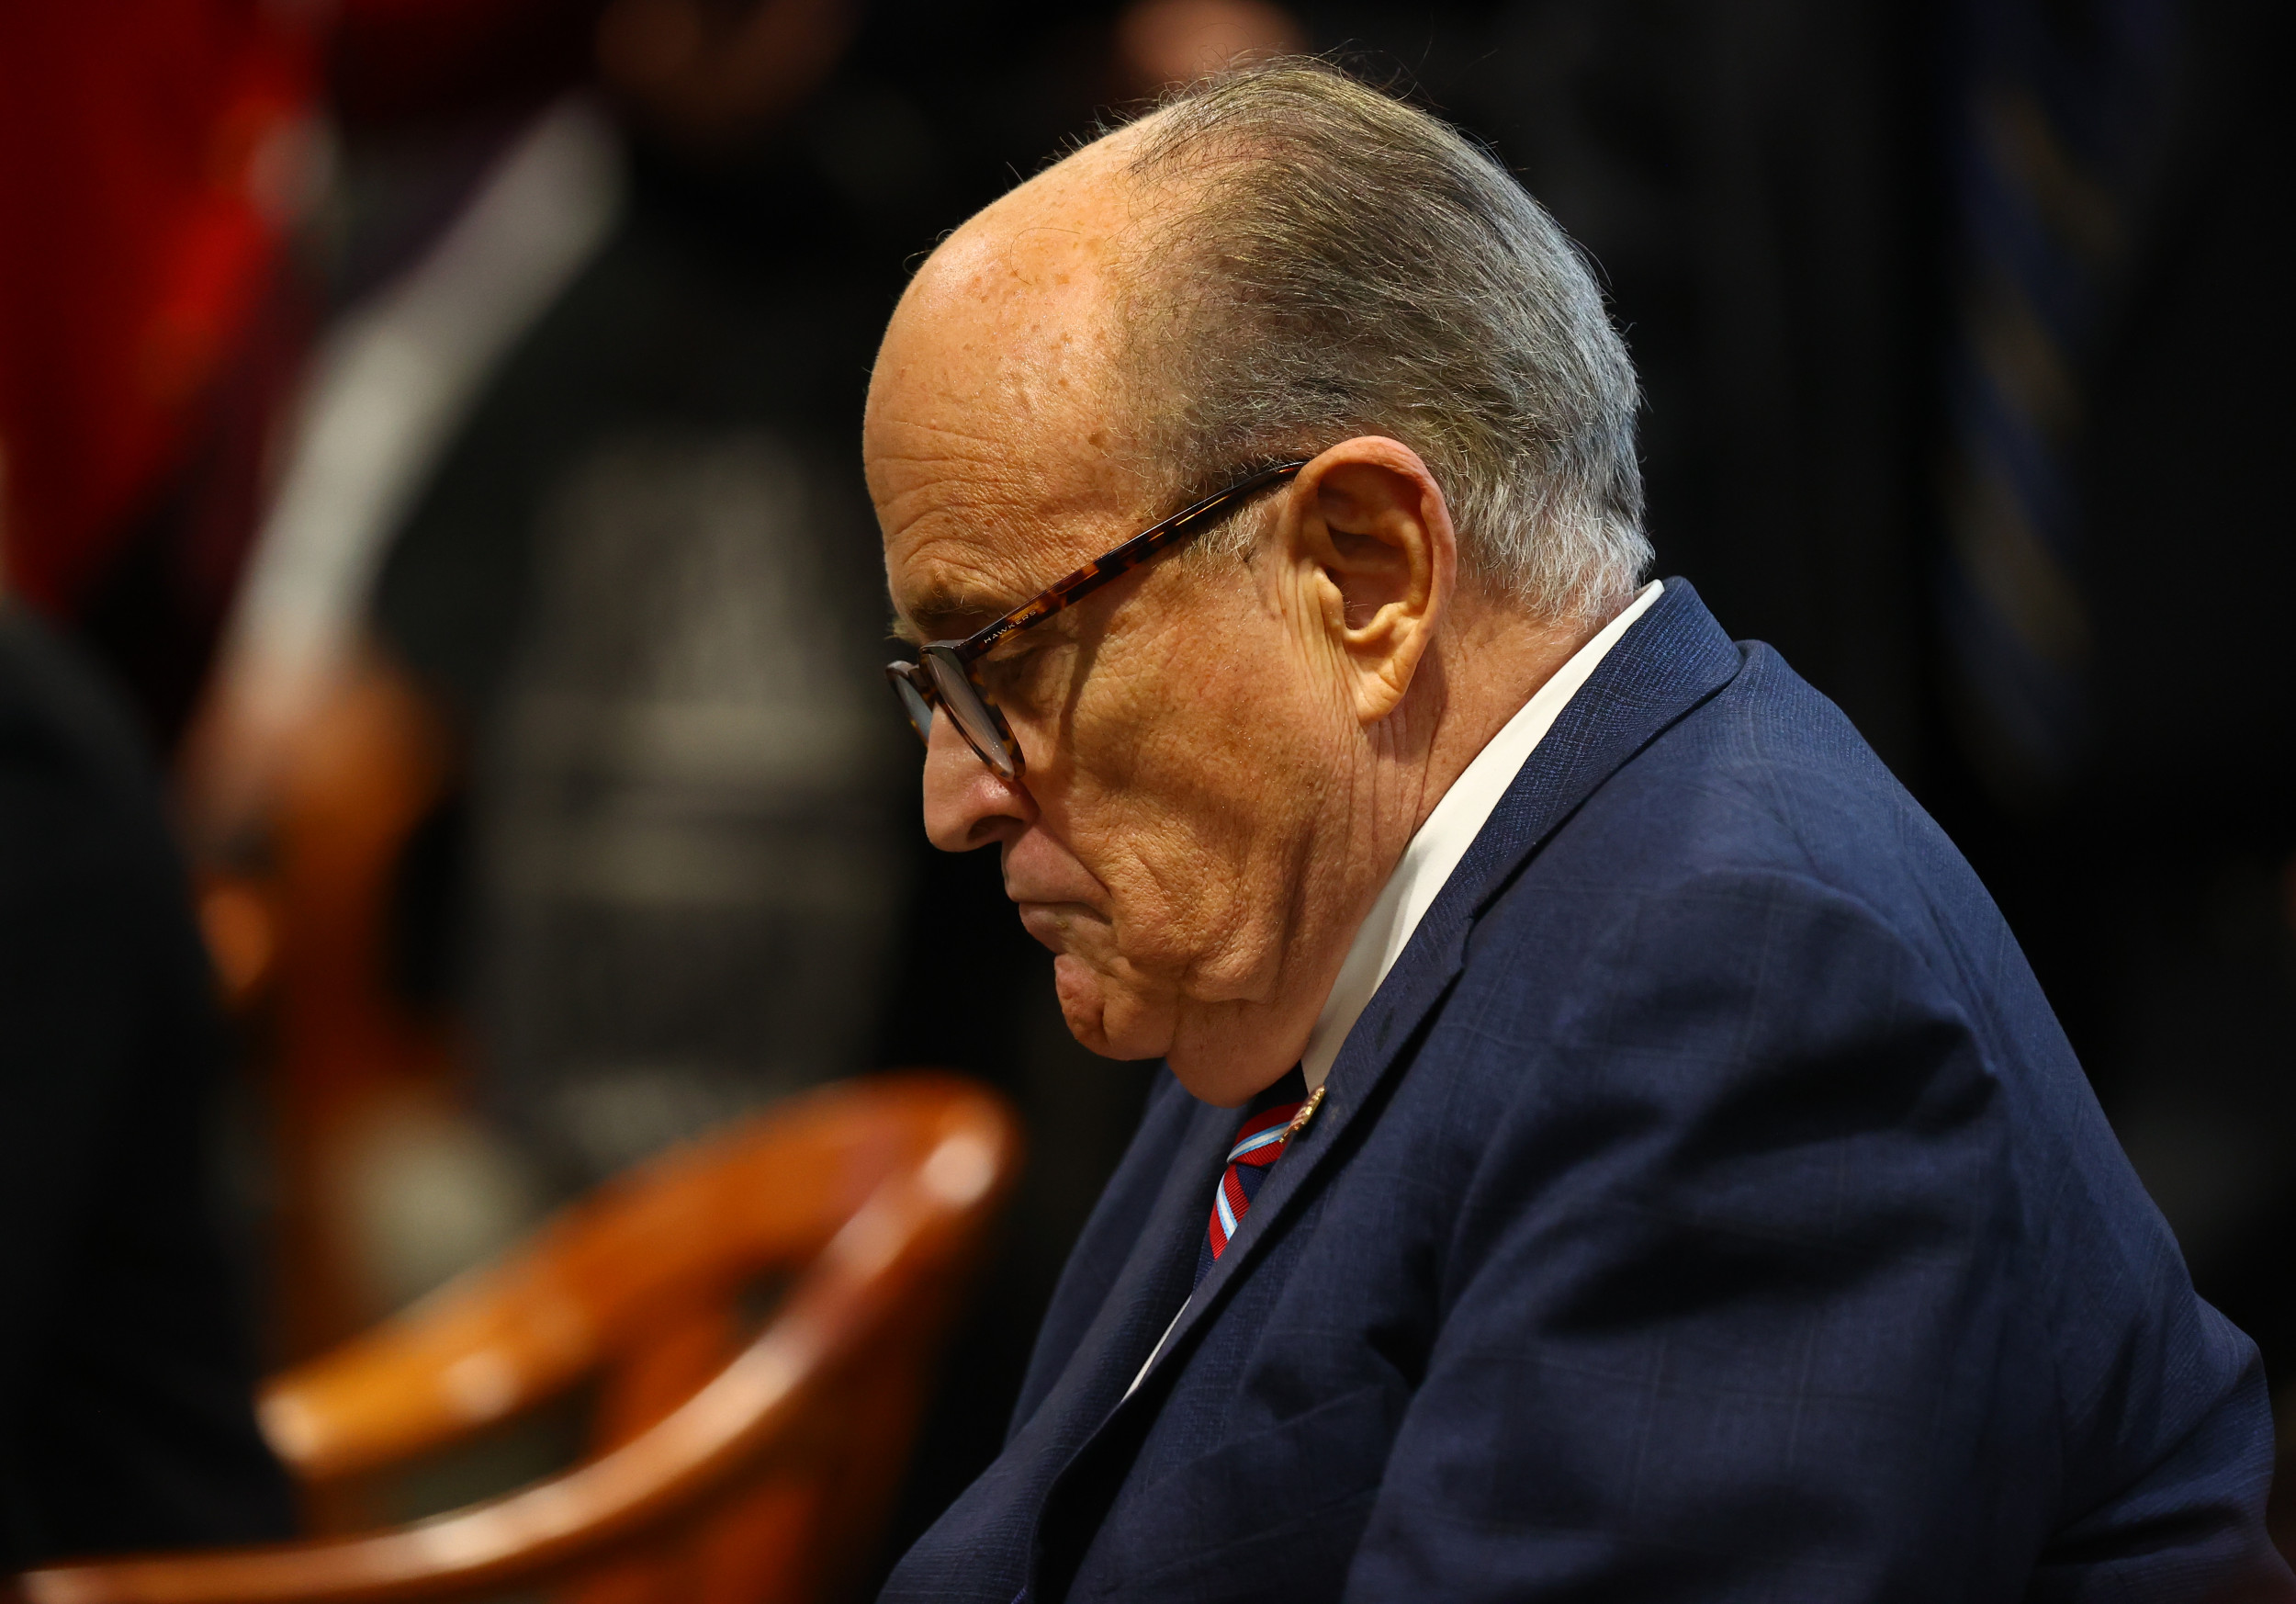 """Rudy Giuliani accuses judge of creating a """"fantasy,"""" says """"we don't need courts"""" in election fight"""